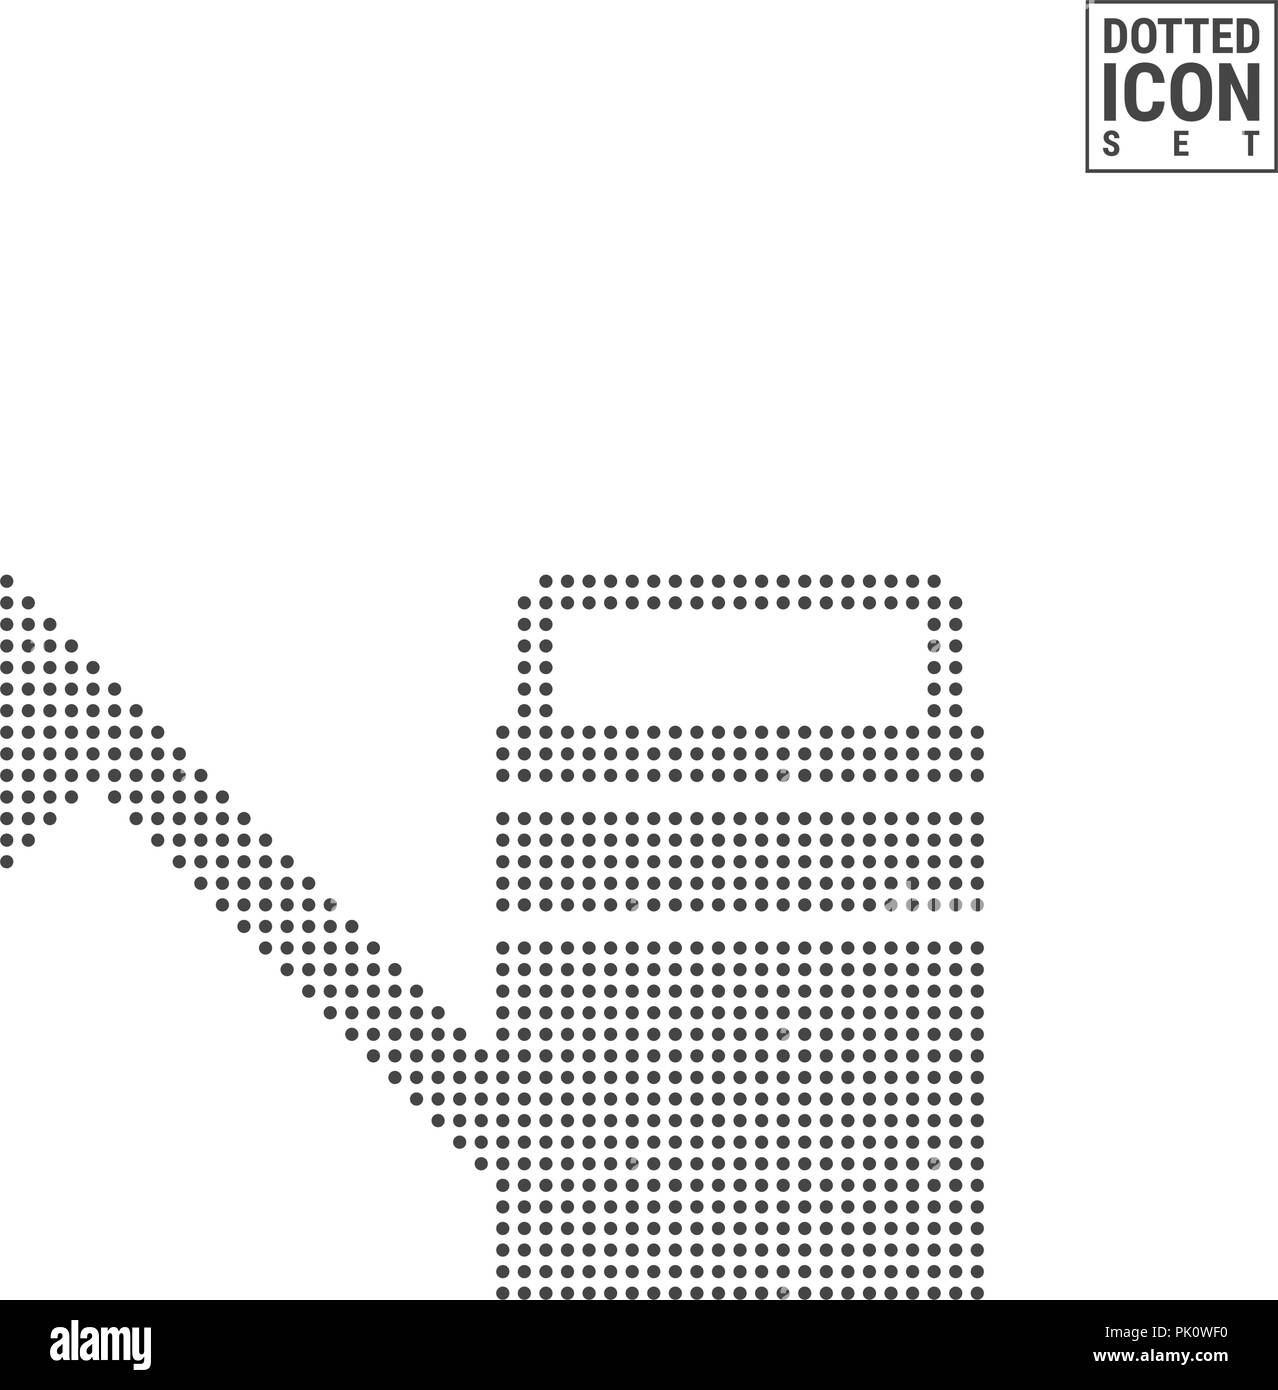 watering can dot pattern icon irrigation dotted icon isolated on